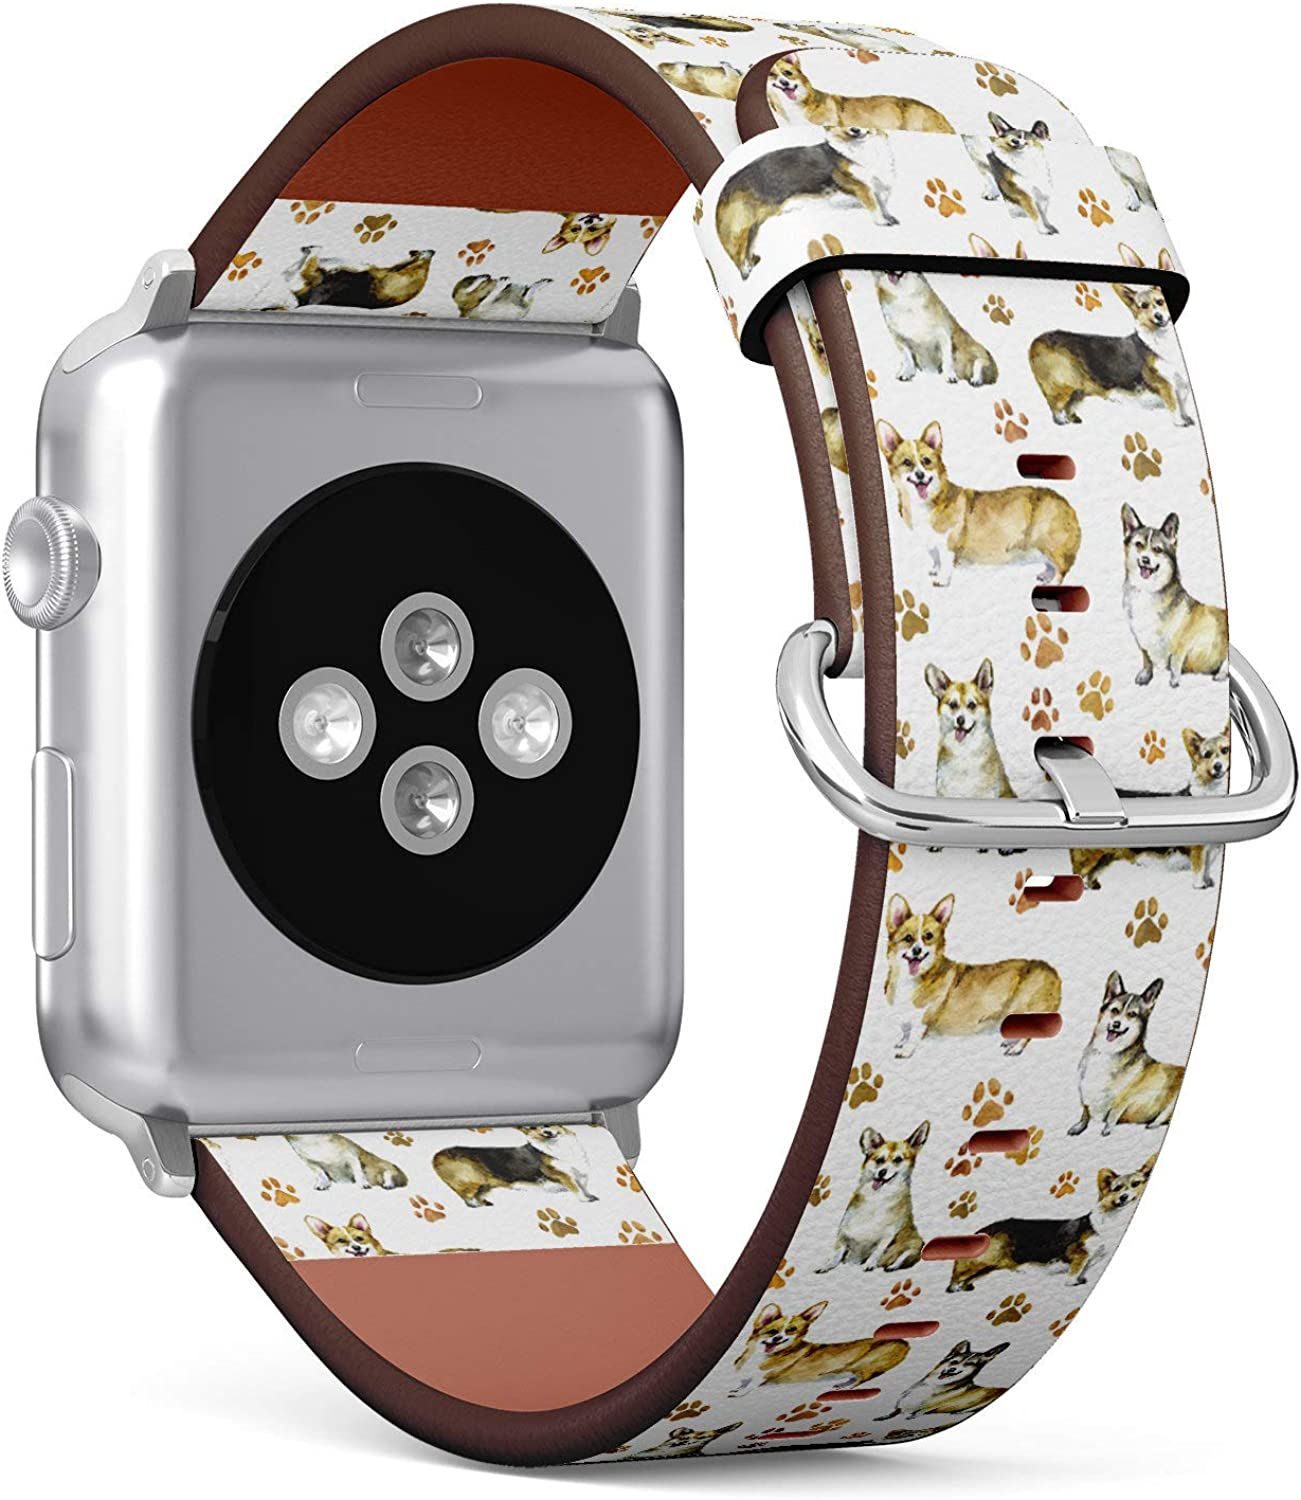 (Lovely Corgi and Paw Footprint Pattern) Patterned Leather Wristband Strap Compatible with Apple Watch Series 4/3/2/1 gen,Replacement of iWatch 38mm / 40mm Bands